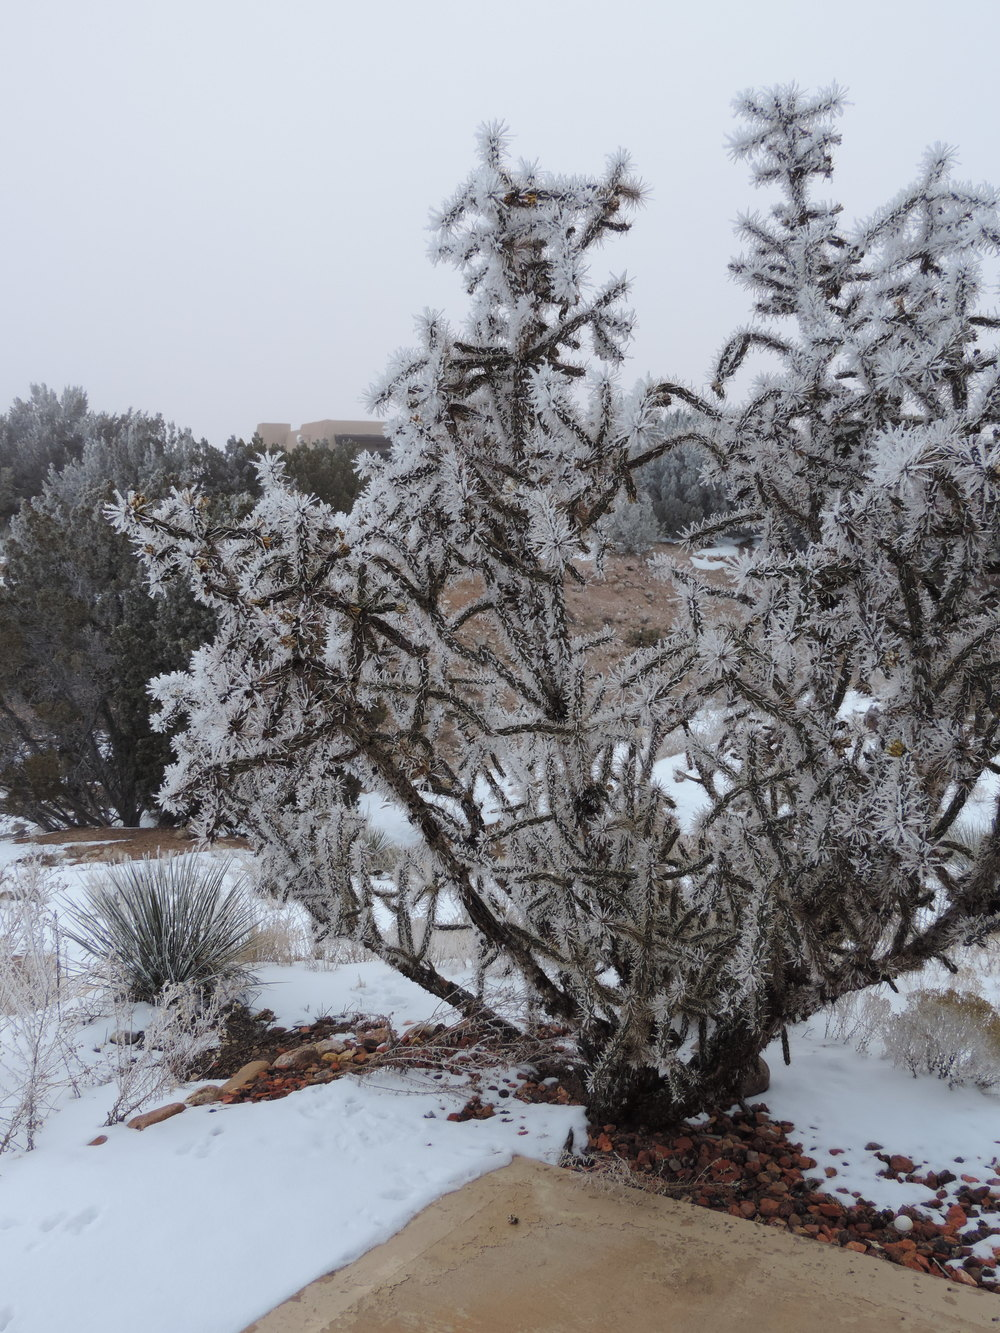 The entire 8-foot cholla, decked in ice crystals.